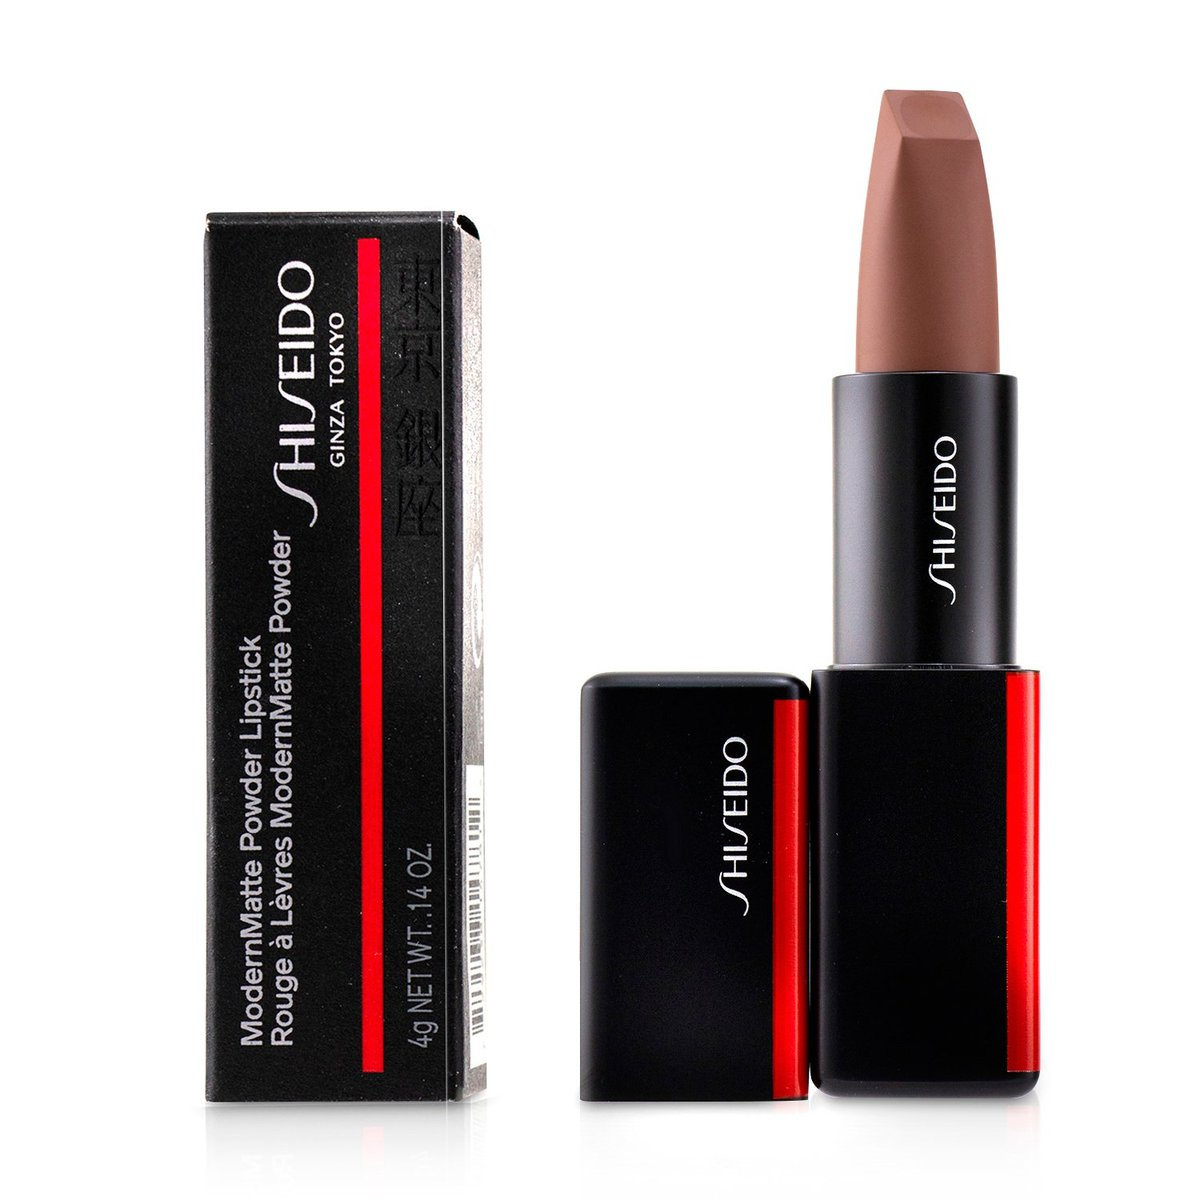 ModernMatte Powder Lipstick - # 504 Thigh High (Nude Beige)  -[Parallel Import Product]